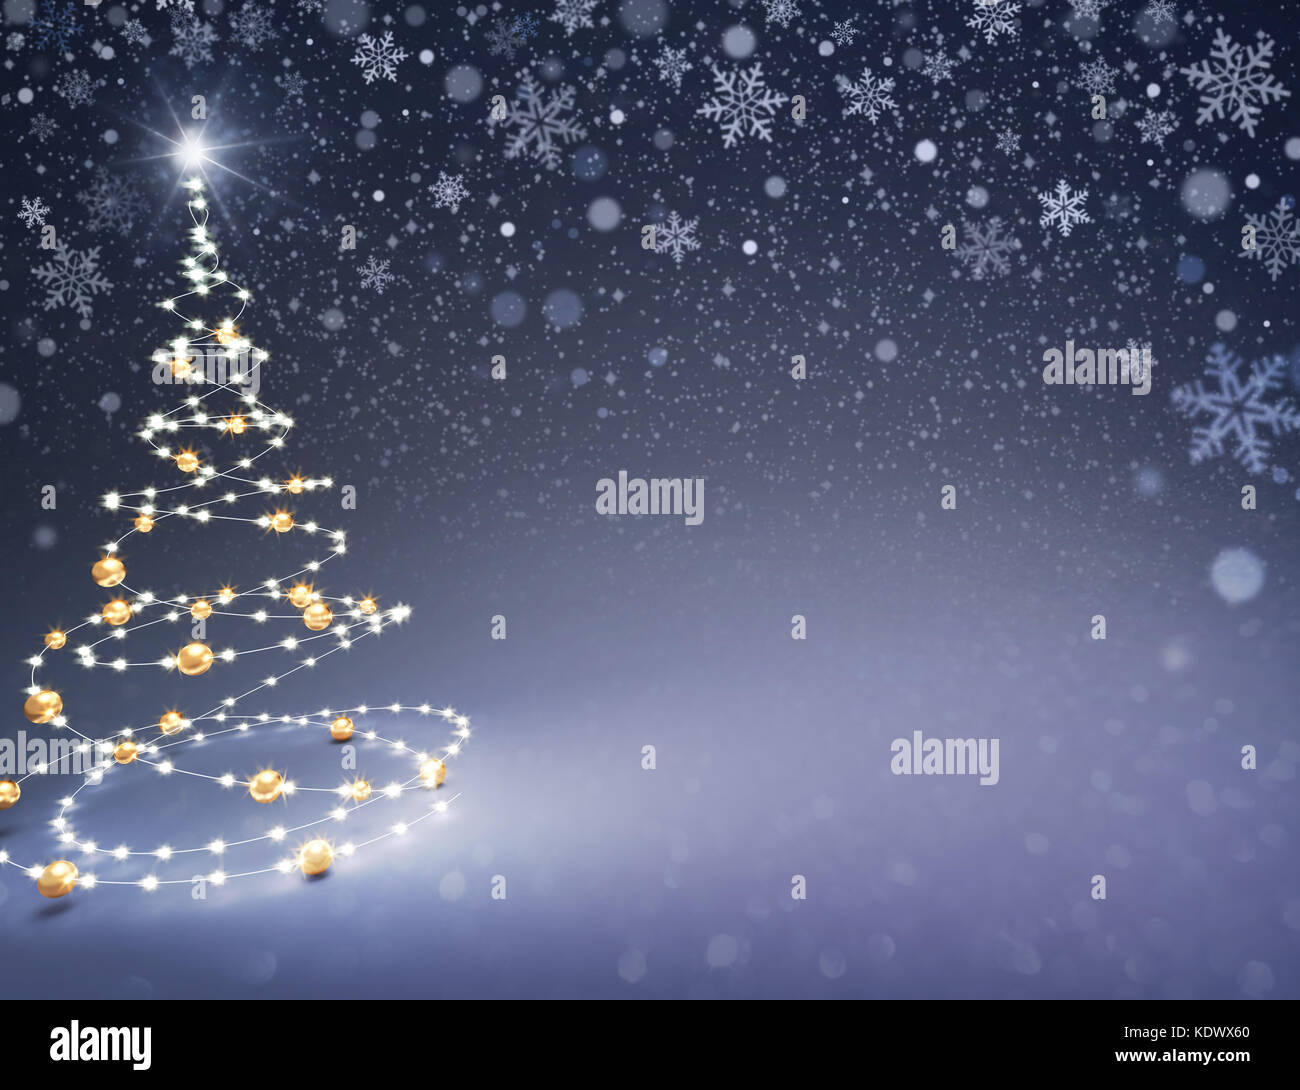 Christmas tree illustrated with light strings and gold Christmas balls on a snowy black background - 3D illustration - Stock Image